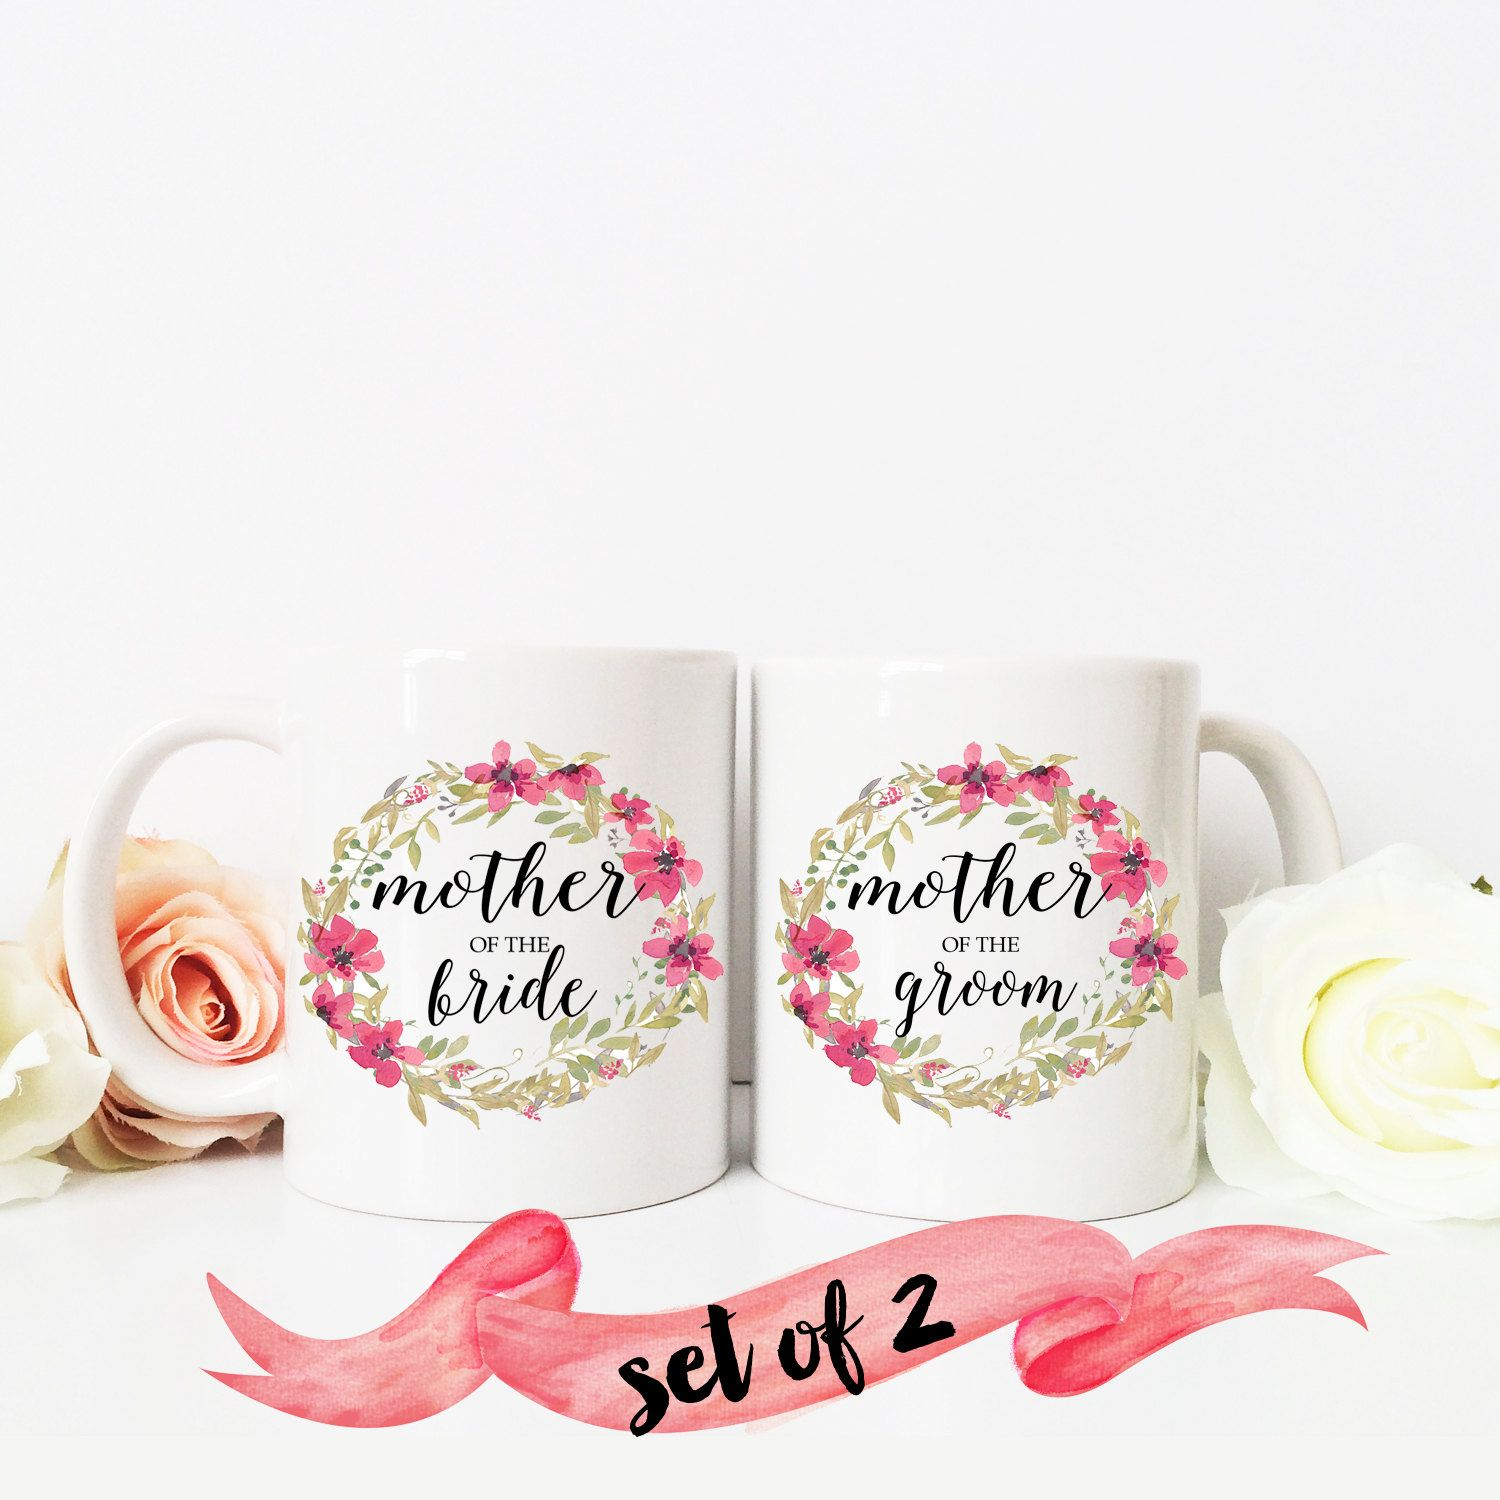 mother of the bride and groom coffee mug floral wreath present